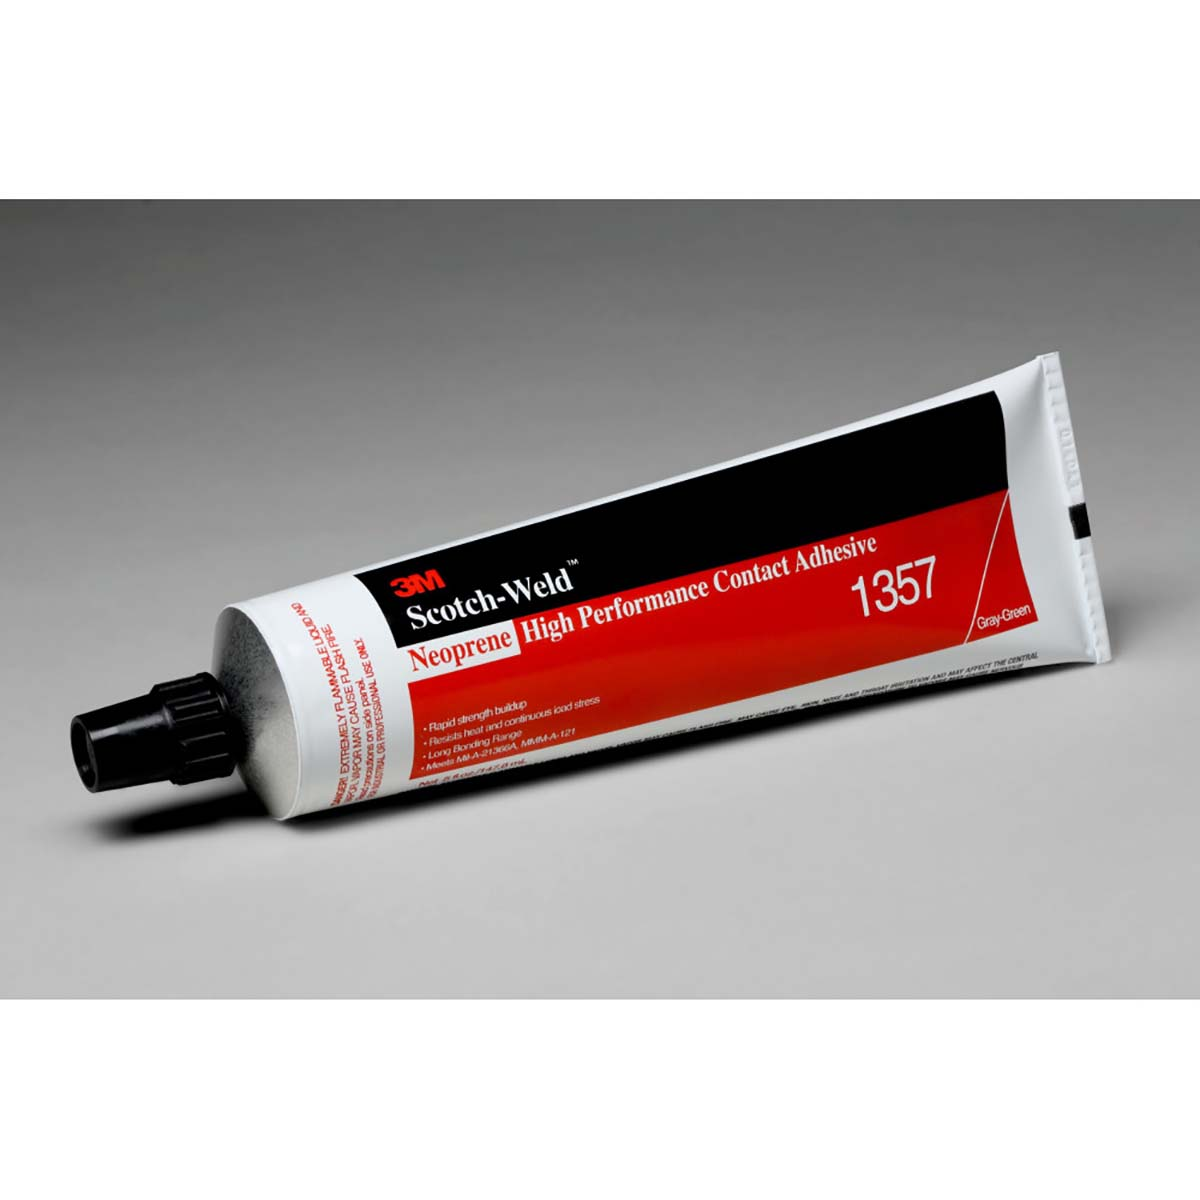 3M Neoprene High Performance Contact Adhesive 1357 Gray-Green  5 Ounce Tube  36 per case